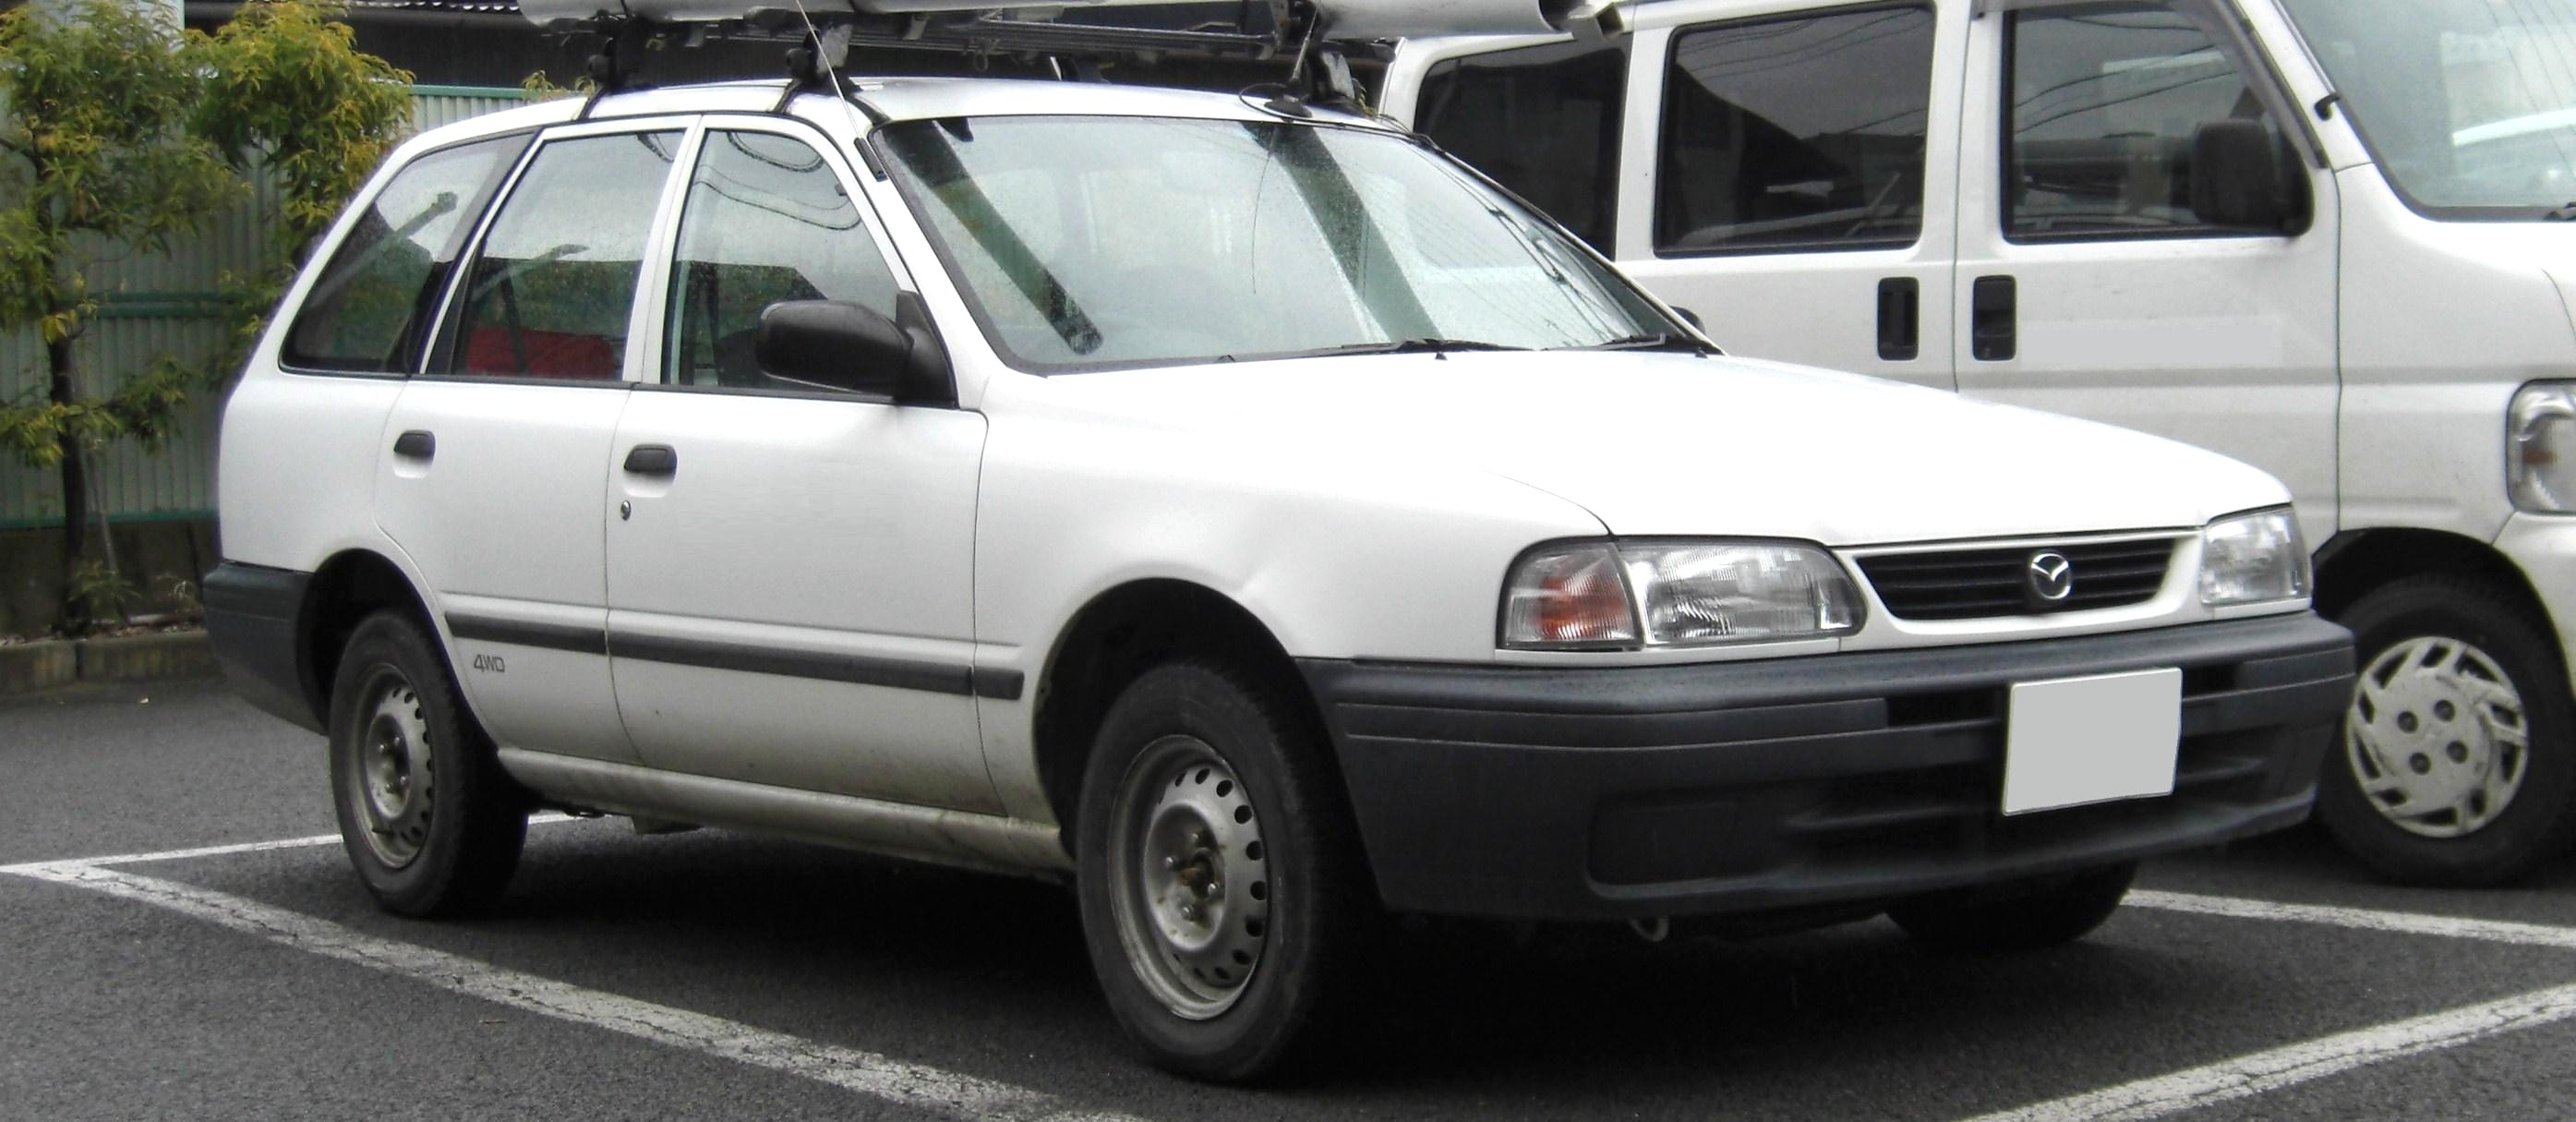 File:Mazda Familia Wagon.jpg - Wikipedia, the free encyclopedia